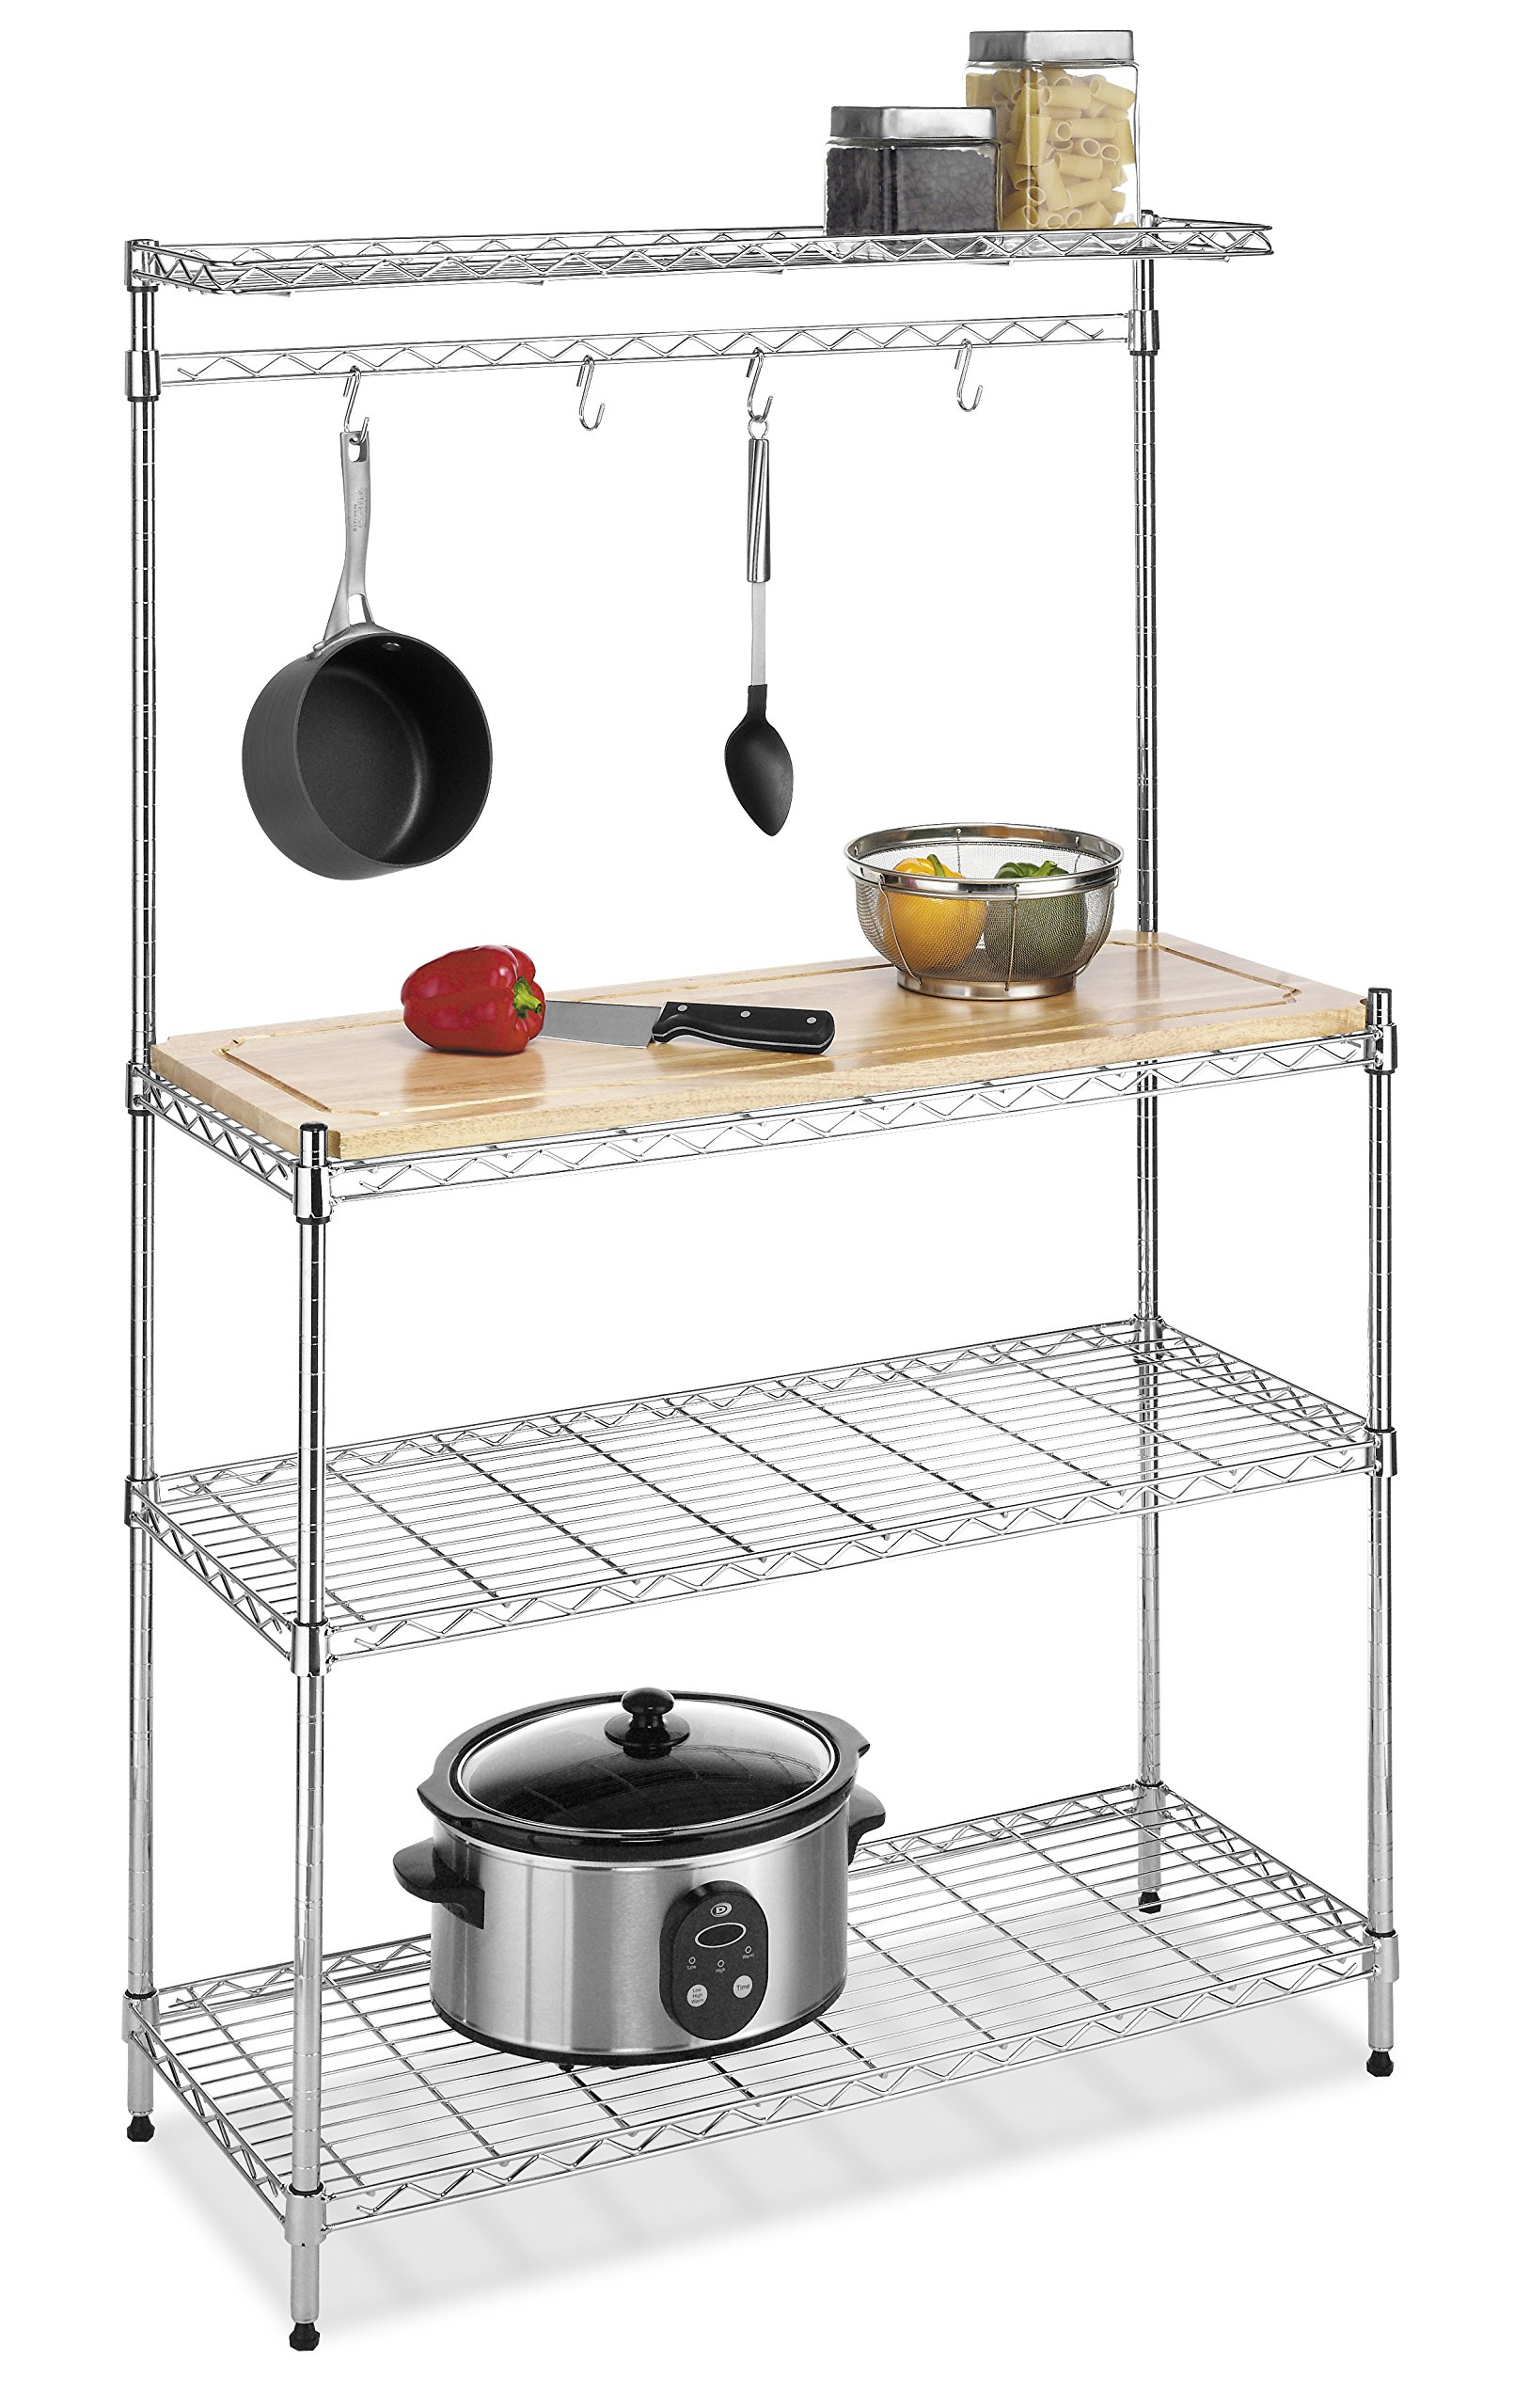 Whitmor Supreme Baker's Rack with Food Safe Removable Wood Cutting Board - Chrome by Whitmor